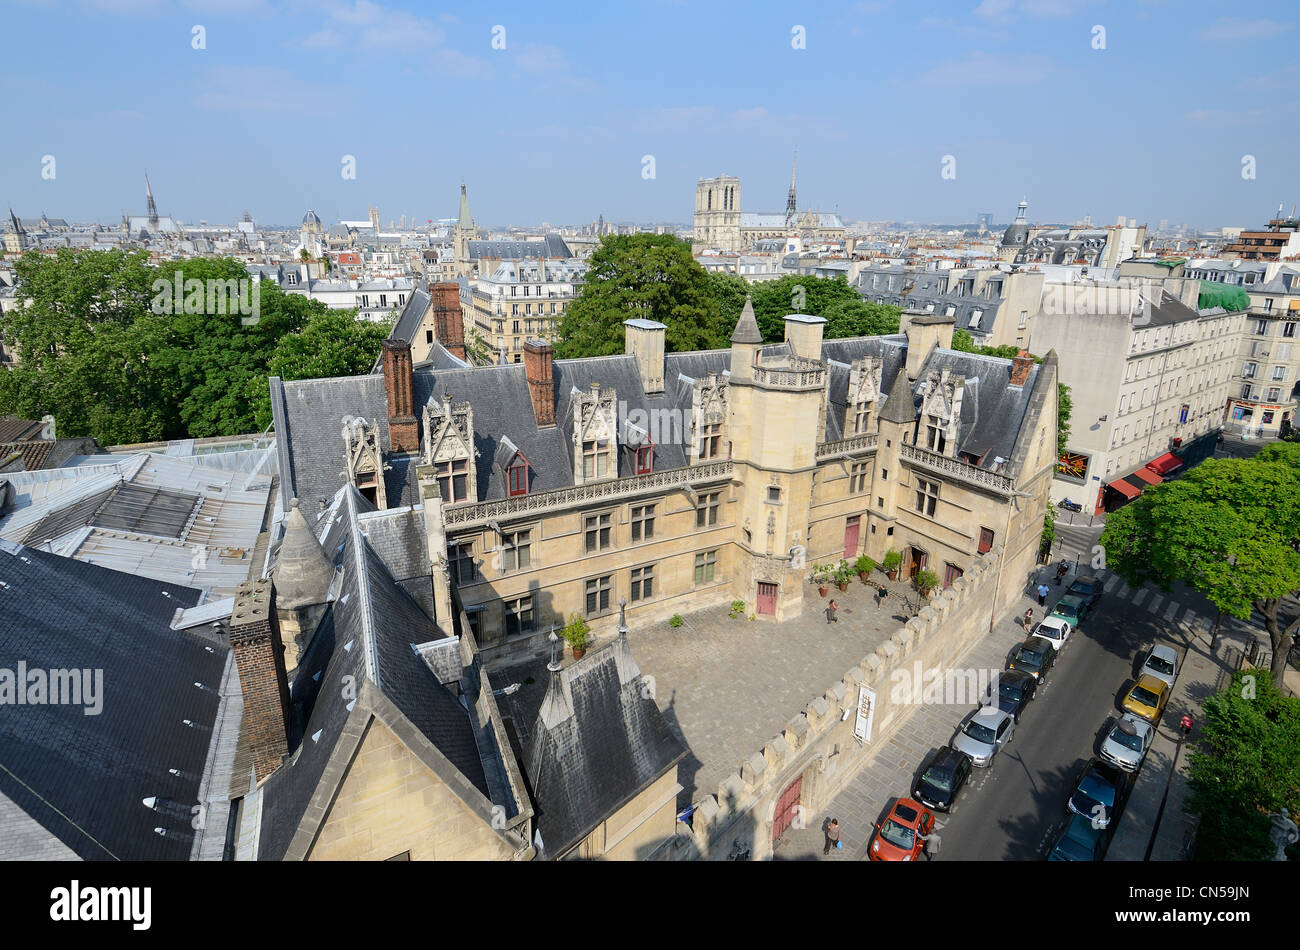 France, Paris, Cluny National museum of Middle Ages - Stock Image